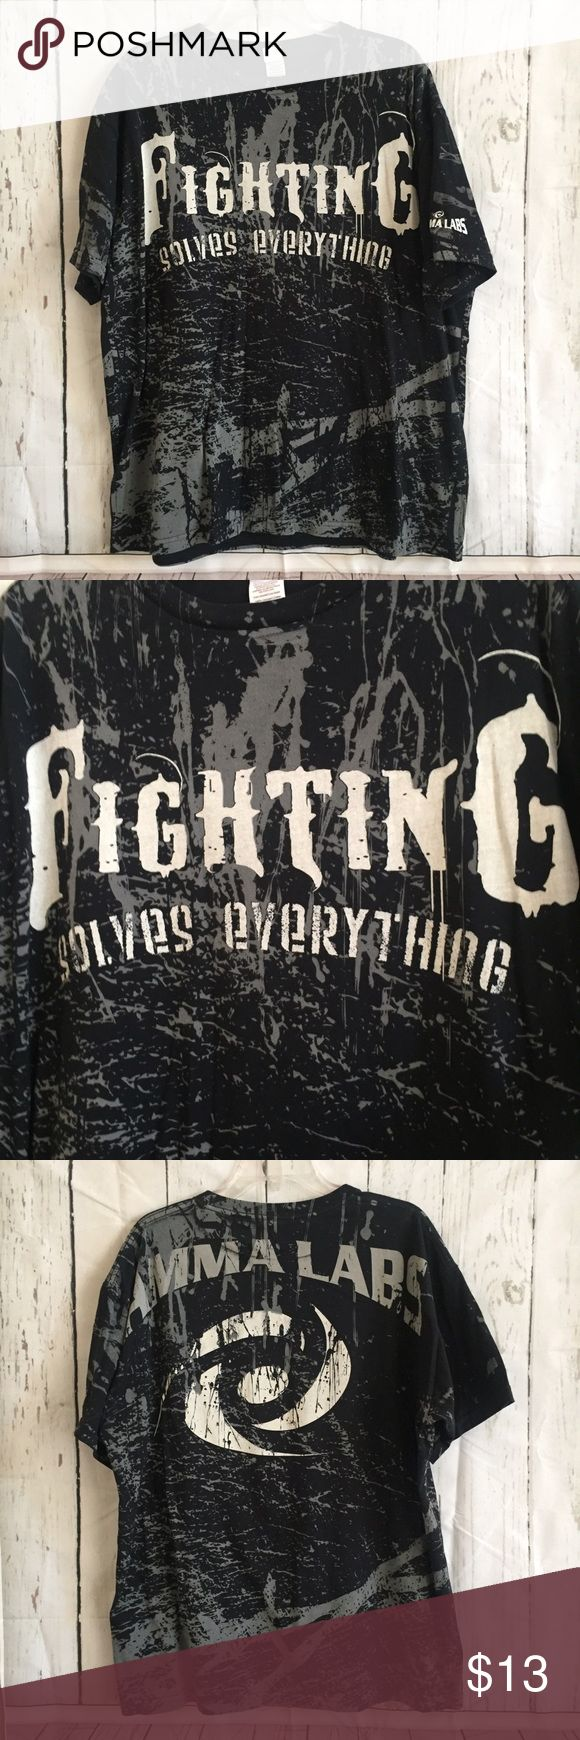 Fighting Solves Everything MMA Tee Front of the MMA tshirt reads Fighting Solves Everything. Back reads MMA Labs. 100% soft cotton. Used once. In excellent condition. MMA Shirts Tees - Short Sleeve